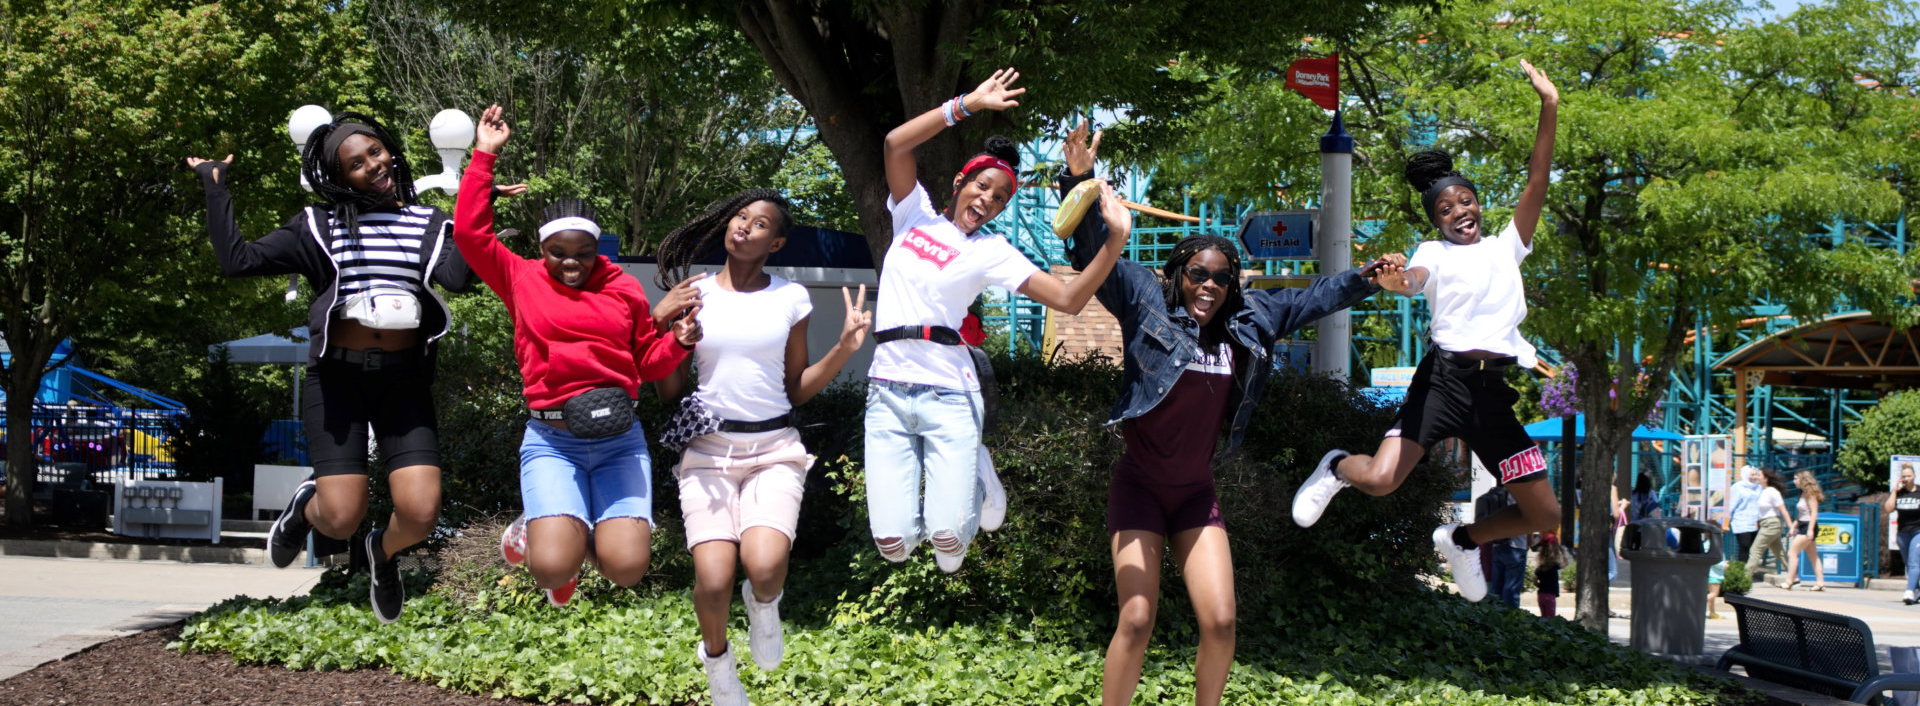 teens jump and smiling